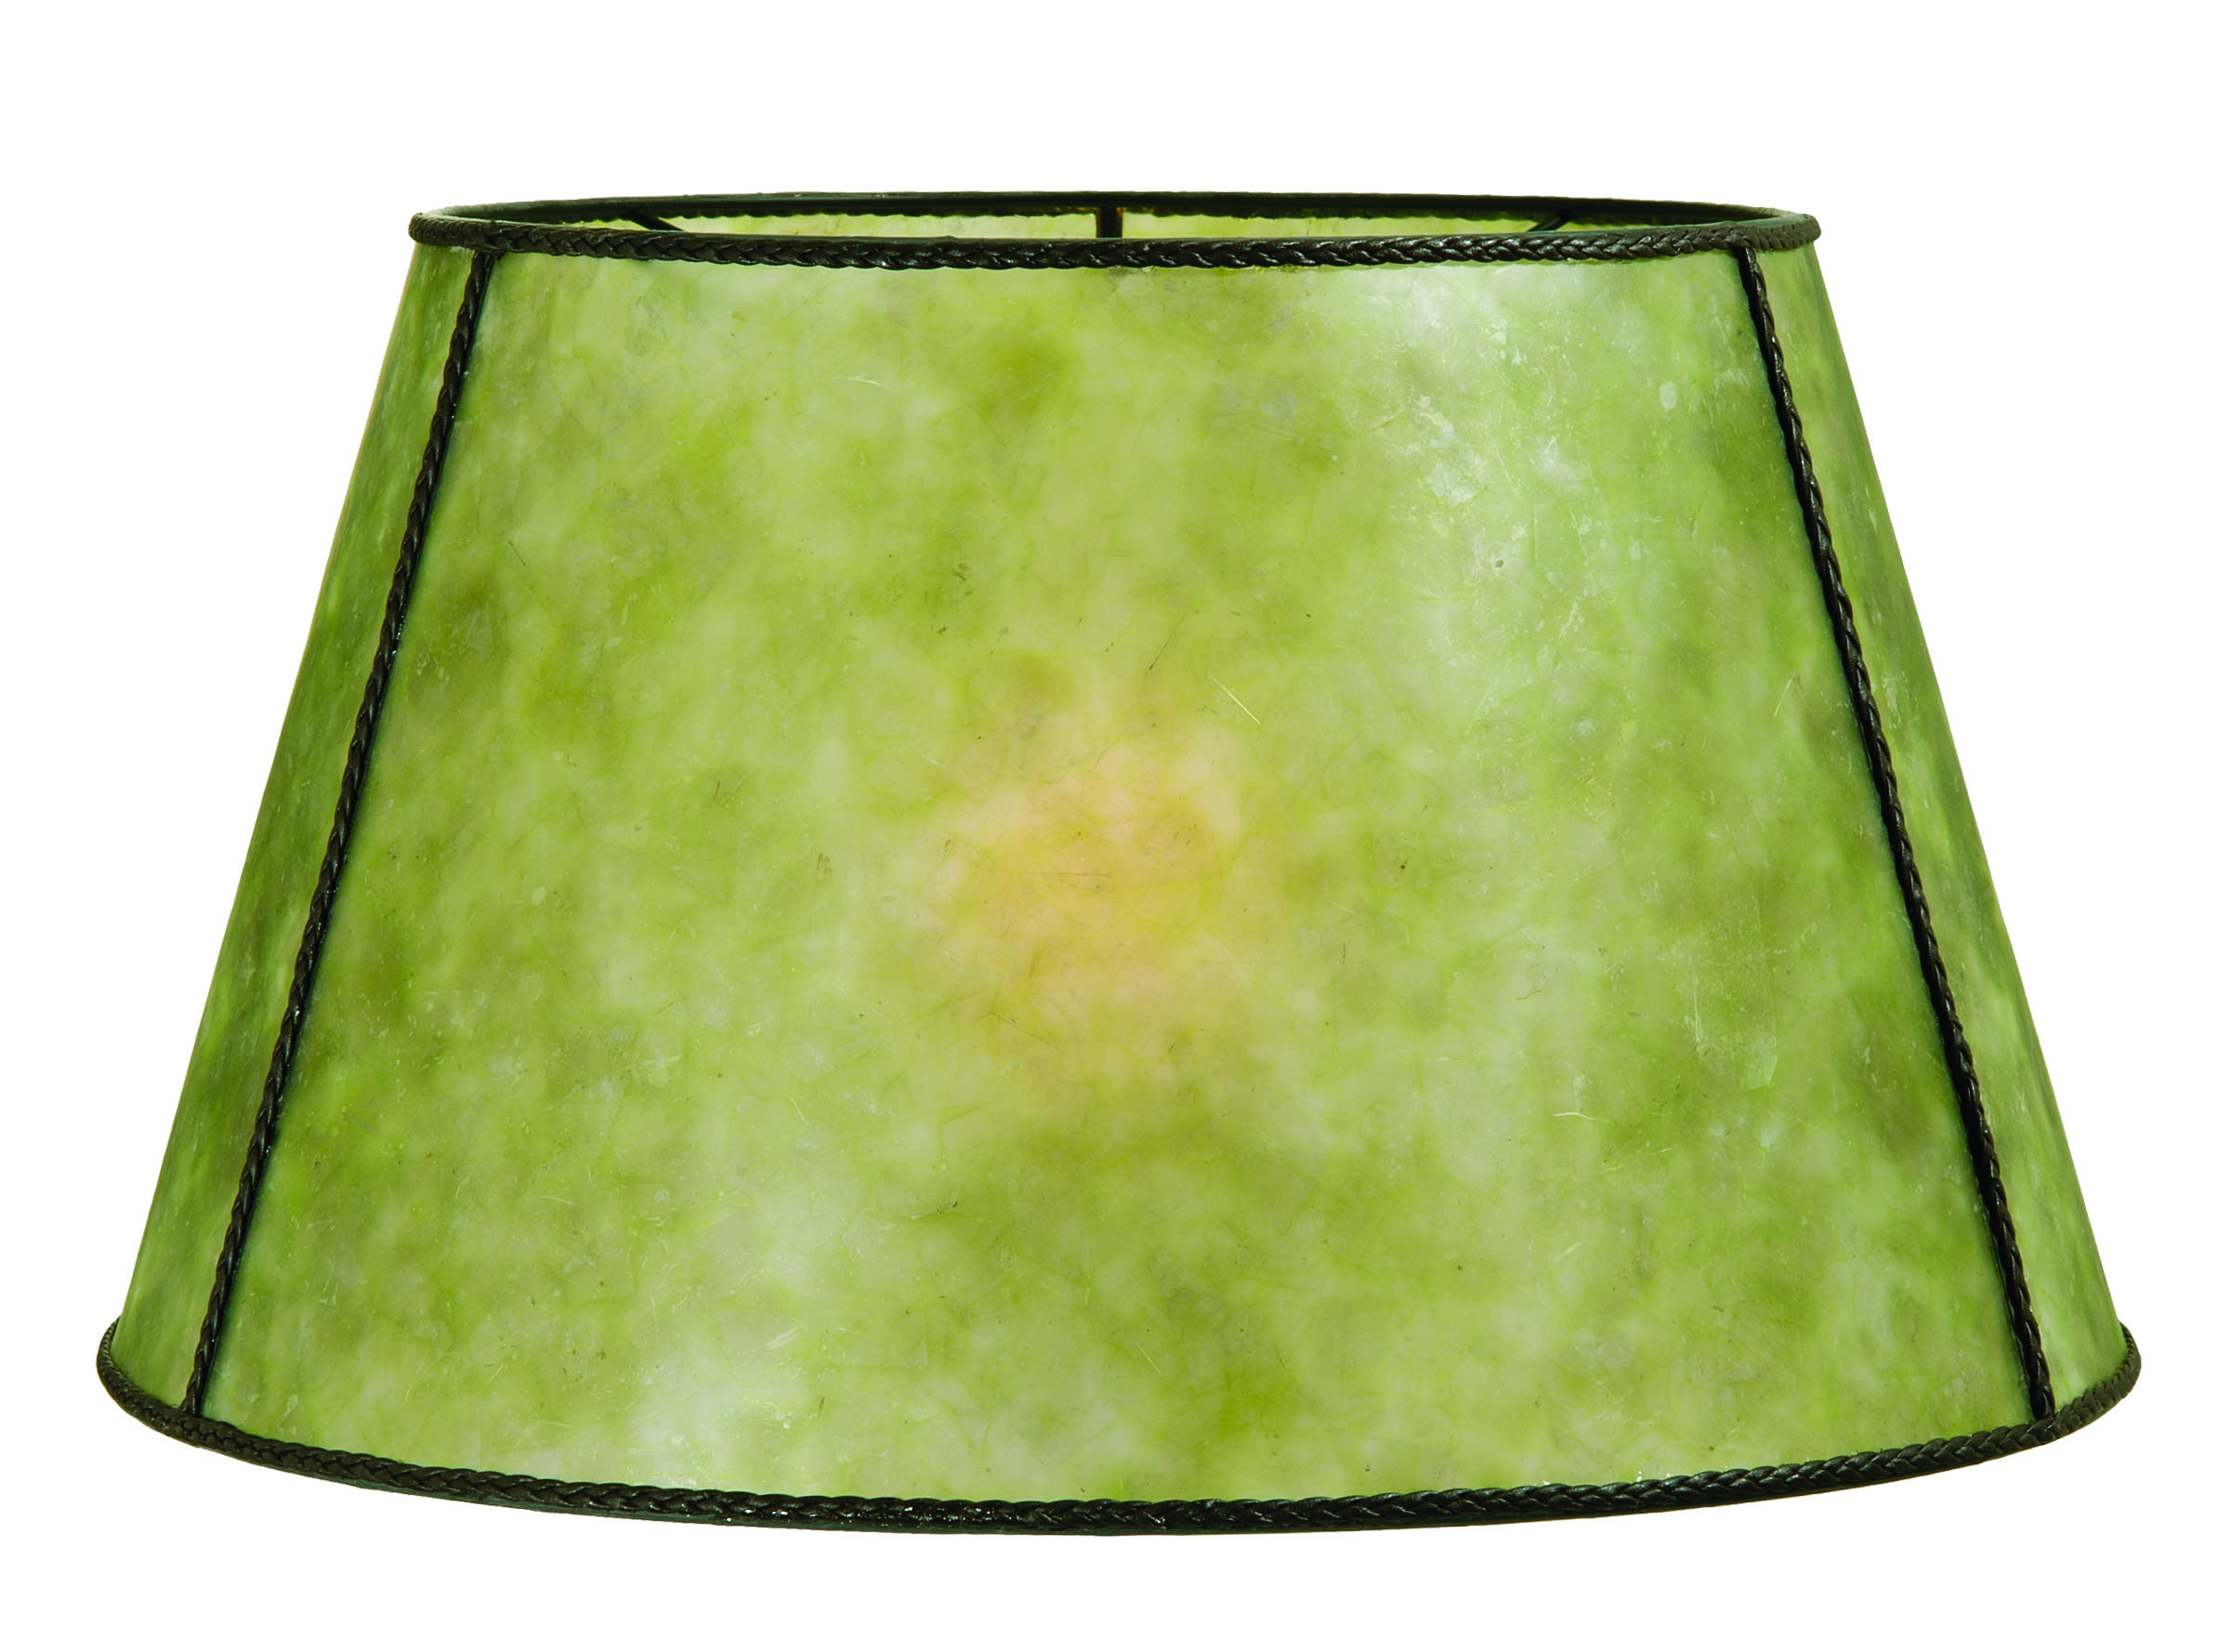 Green mica empire style floor lamp shade 05719g bp lamp supply 05719g green mica empire style floor lamp shade mozeypictures Image collections